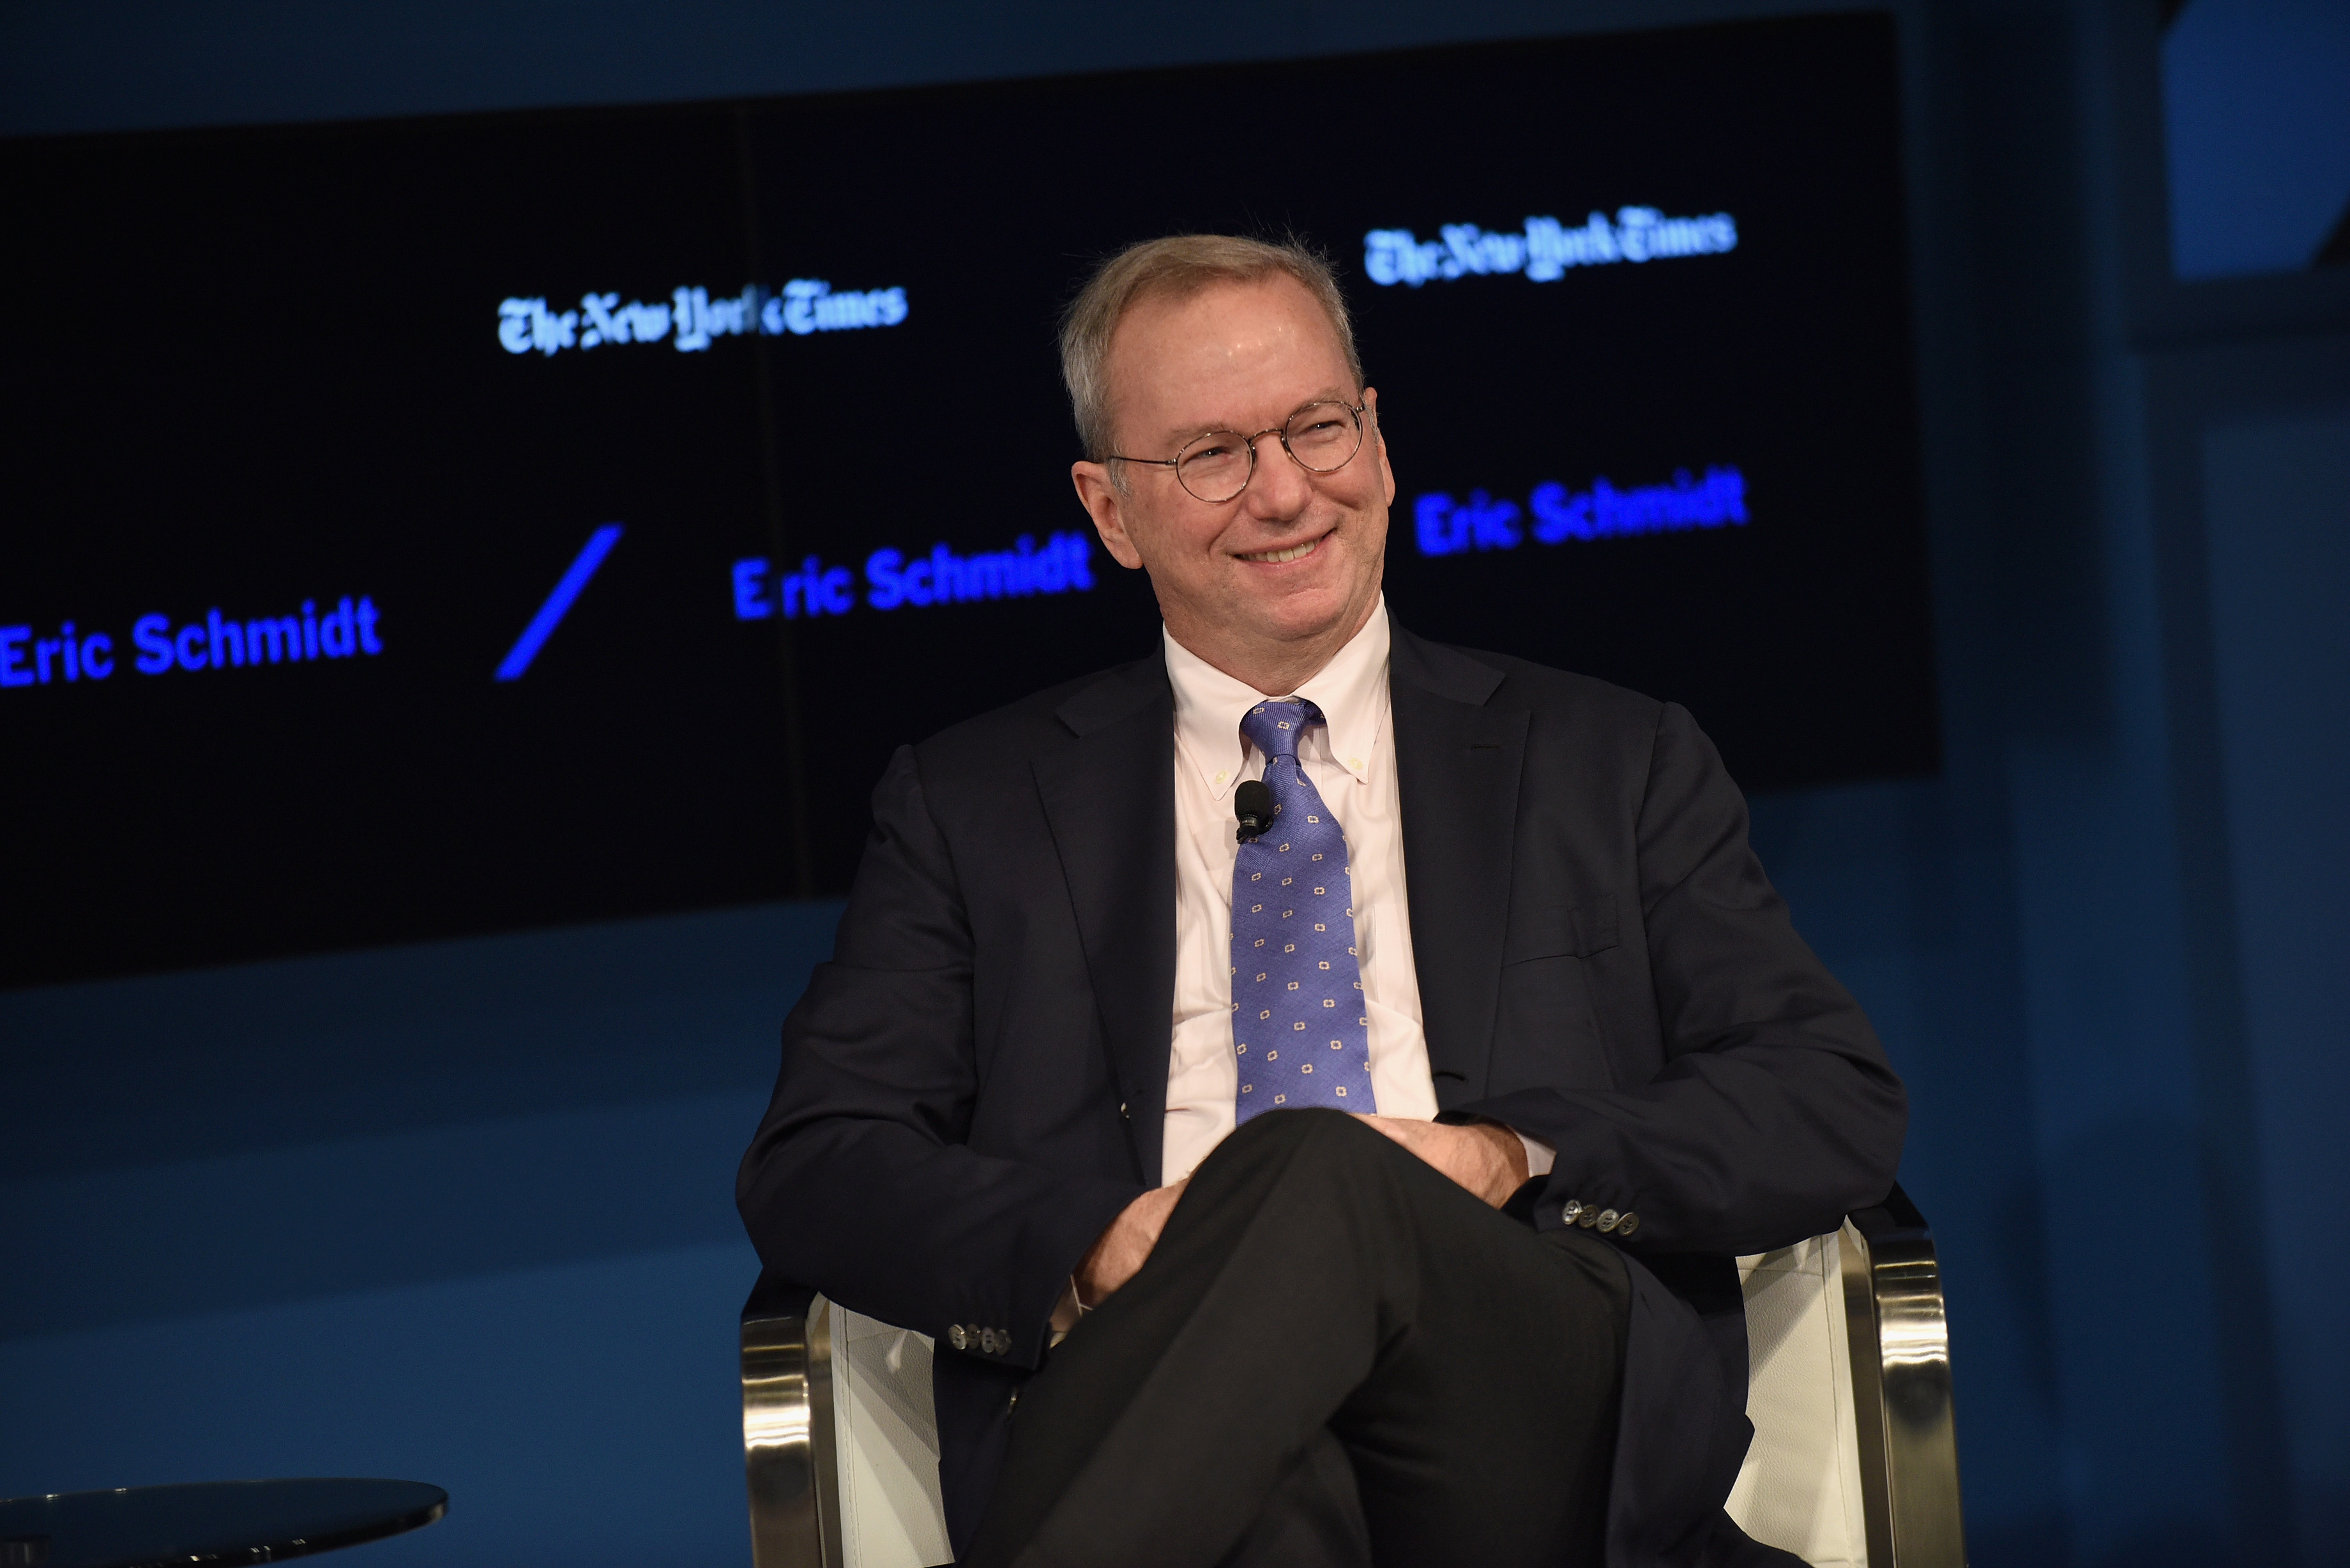 Eric Schmidt onstage at the 2016 DealBook Conference in New York City